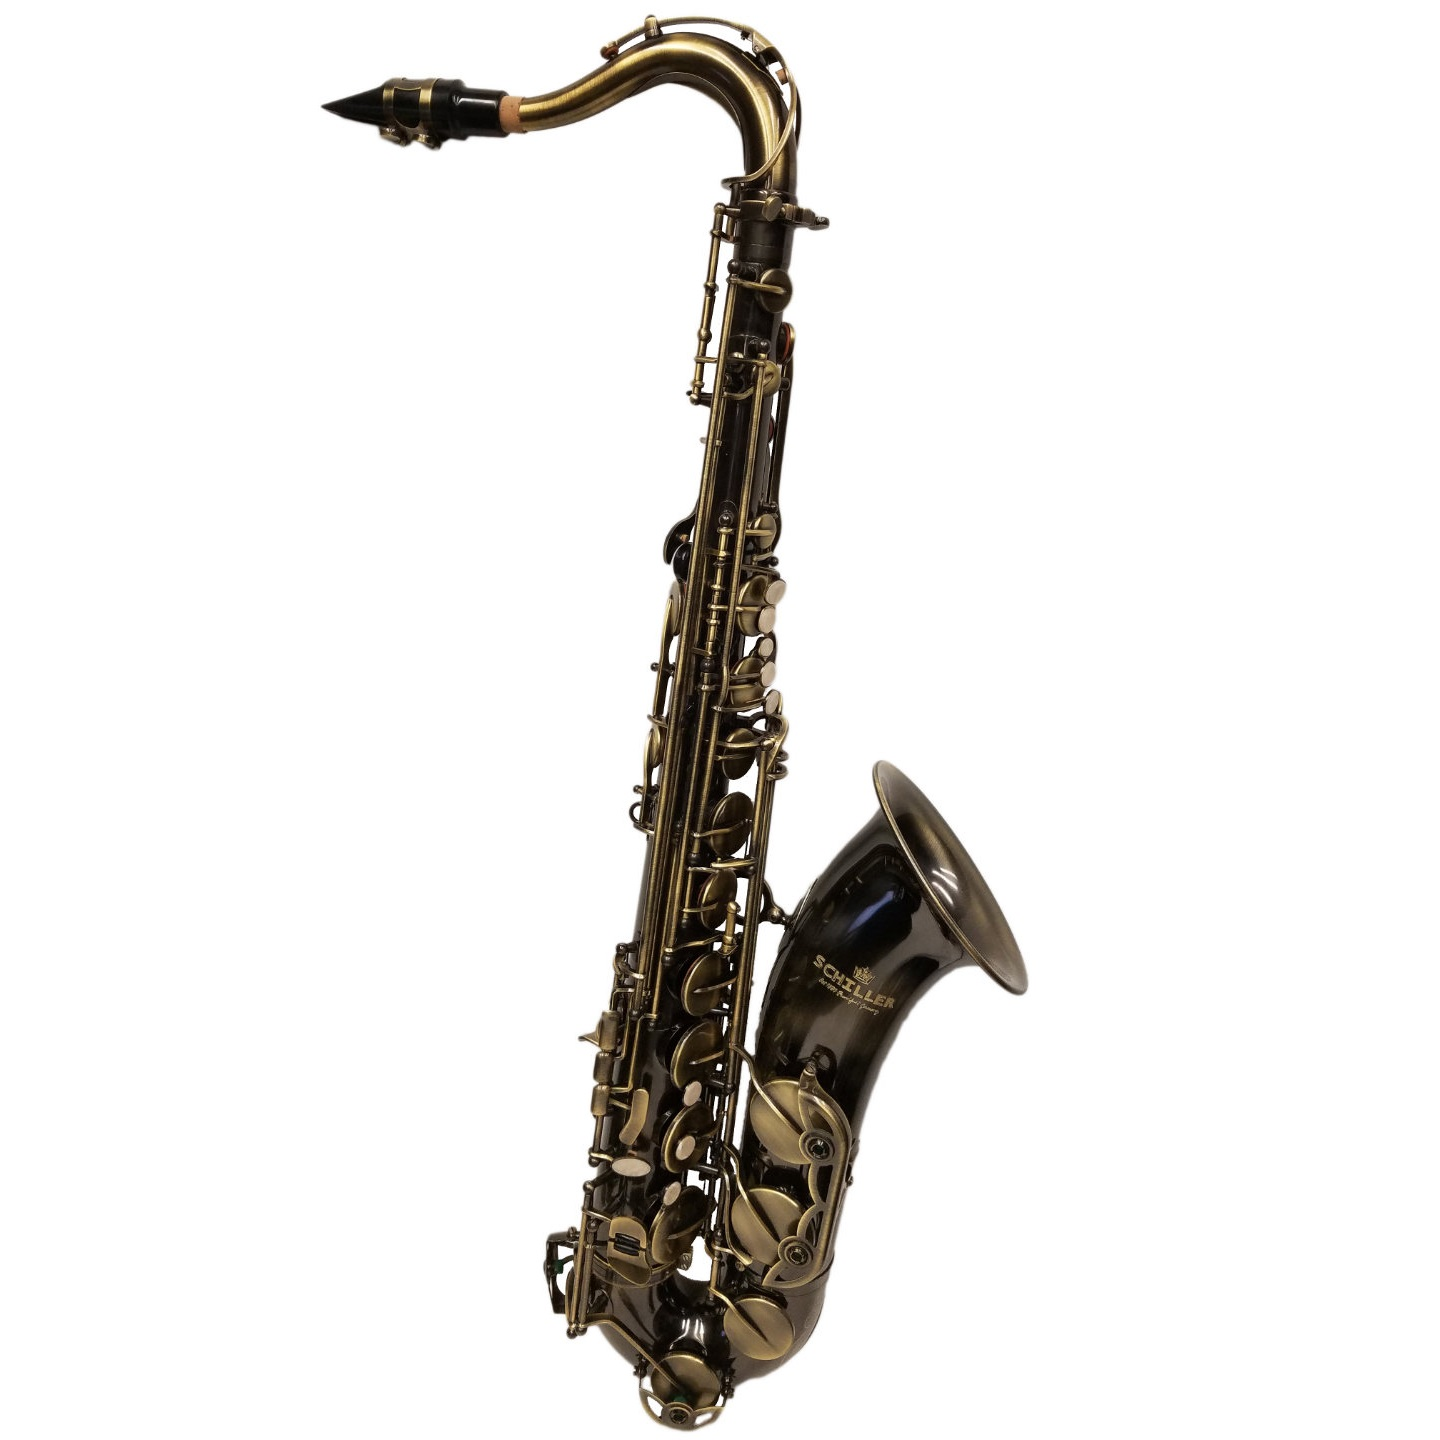 American Heritage 400 Tenor Saxophone – Turkish Brass